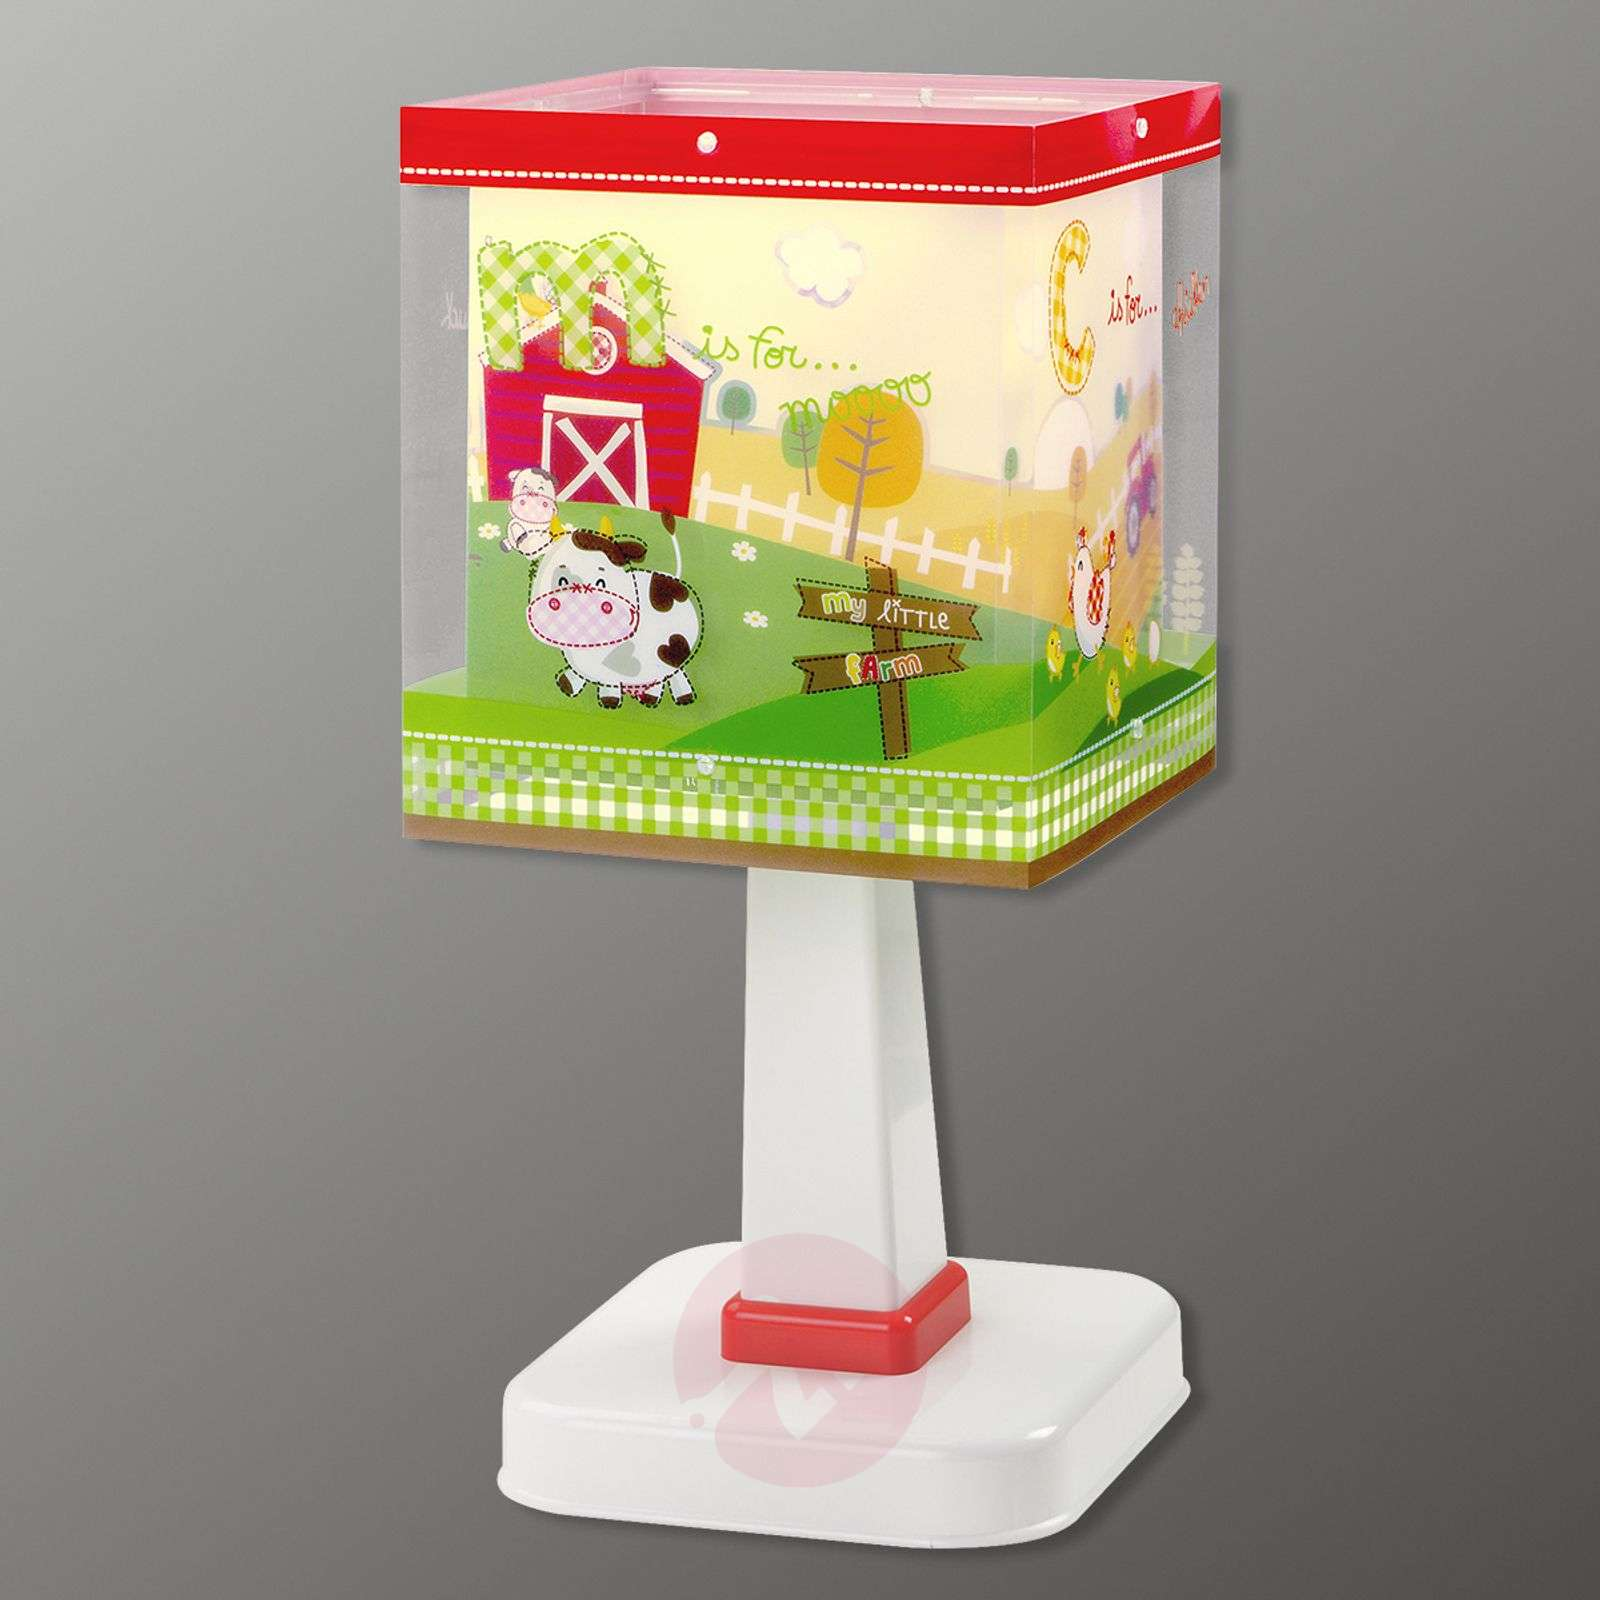 Children table lamp gallery coffee table design ideas children table lamp choice image coffee table design ideas my little farm childrens table lamp lights geotapseo Images